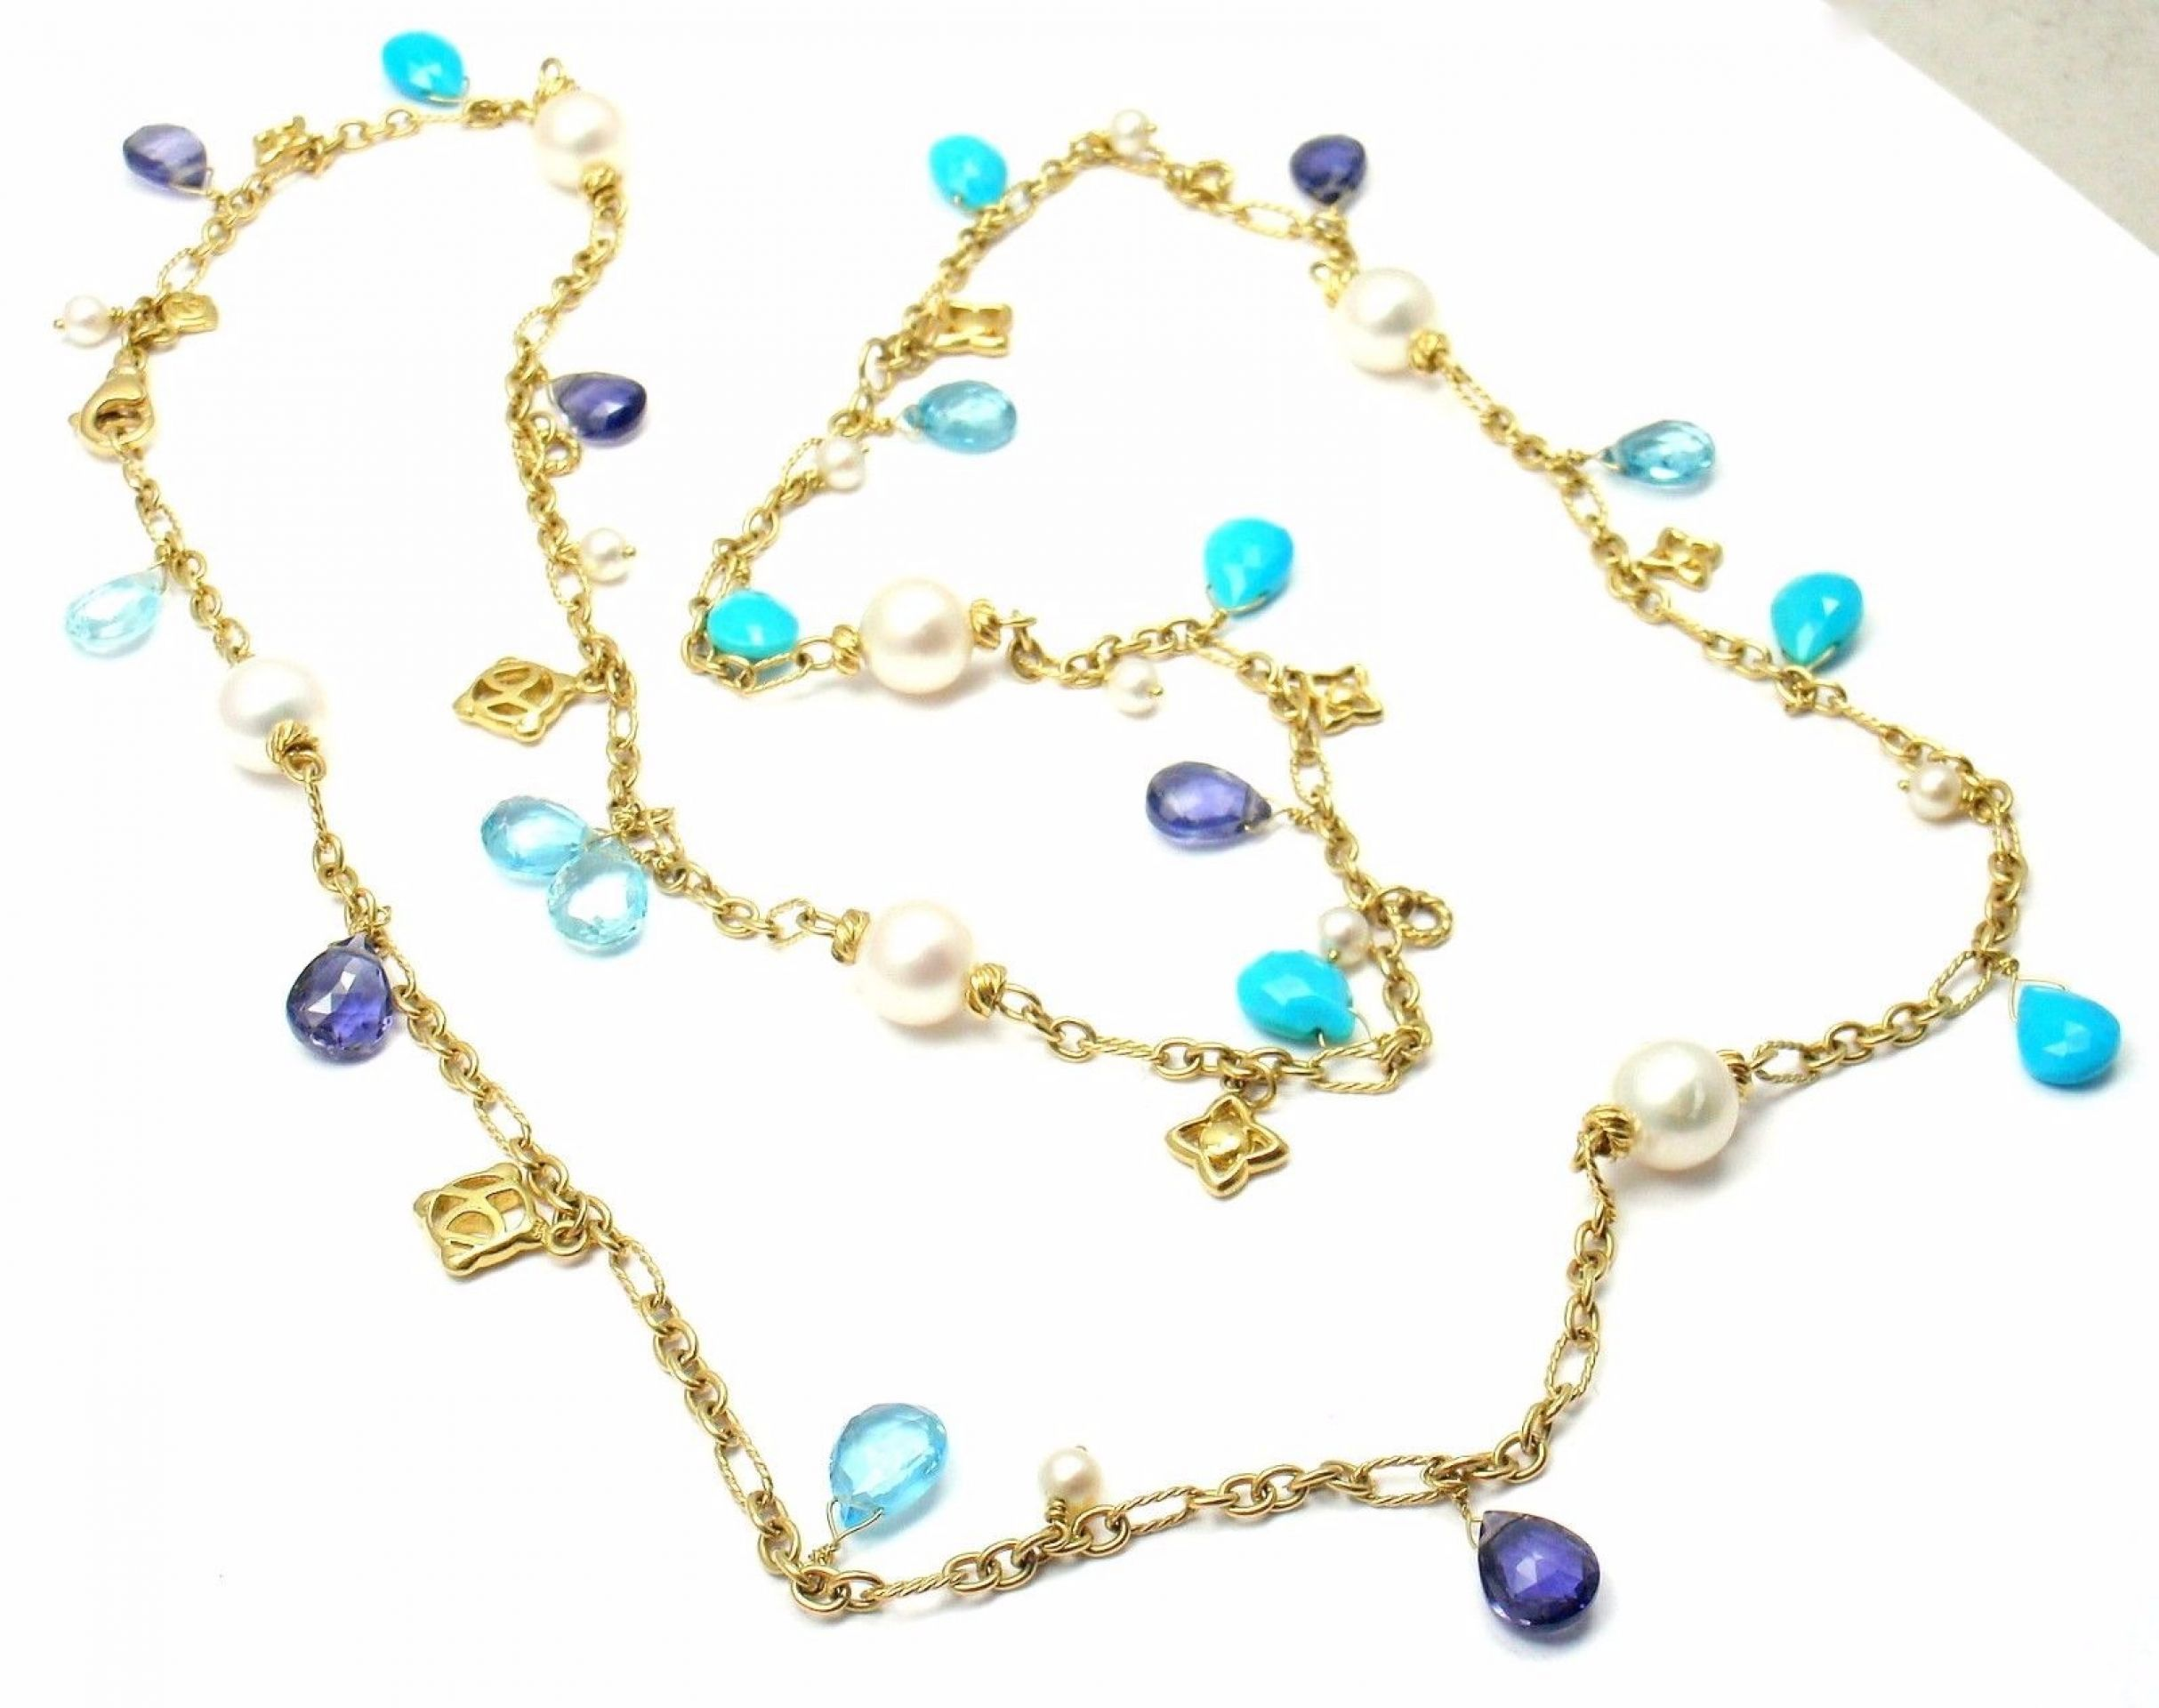 David Yurman DY Logo 18k Yellow Gold Turquoise Pearl Tanzanite Bead Necklace 30""